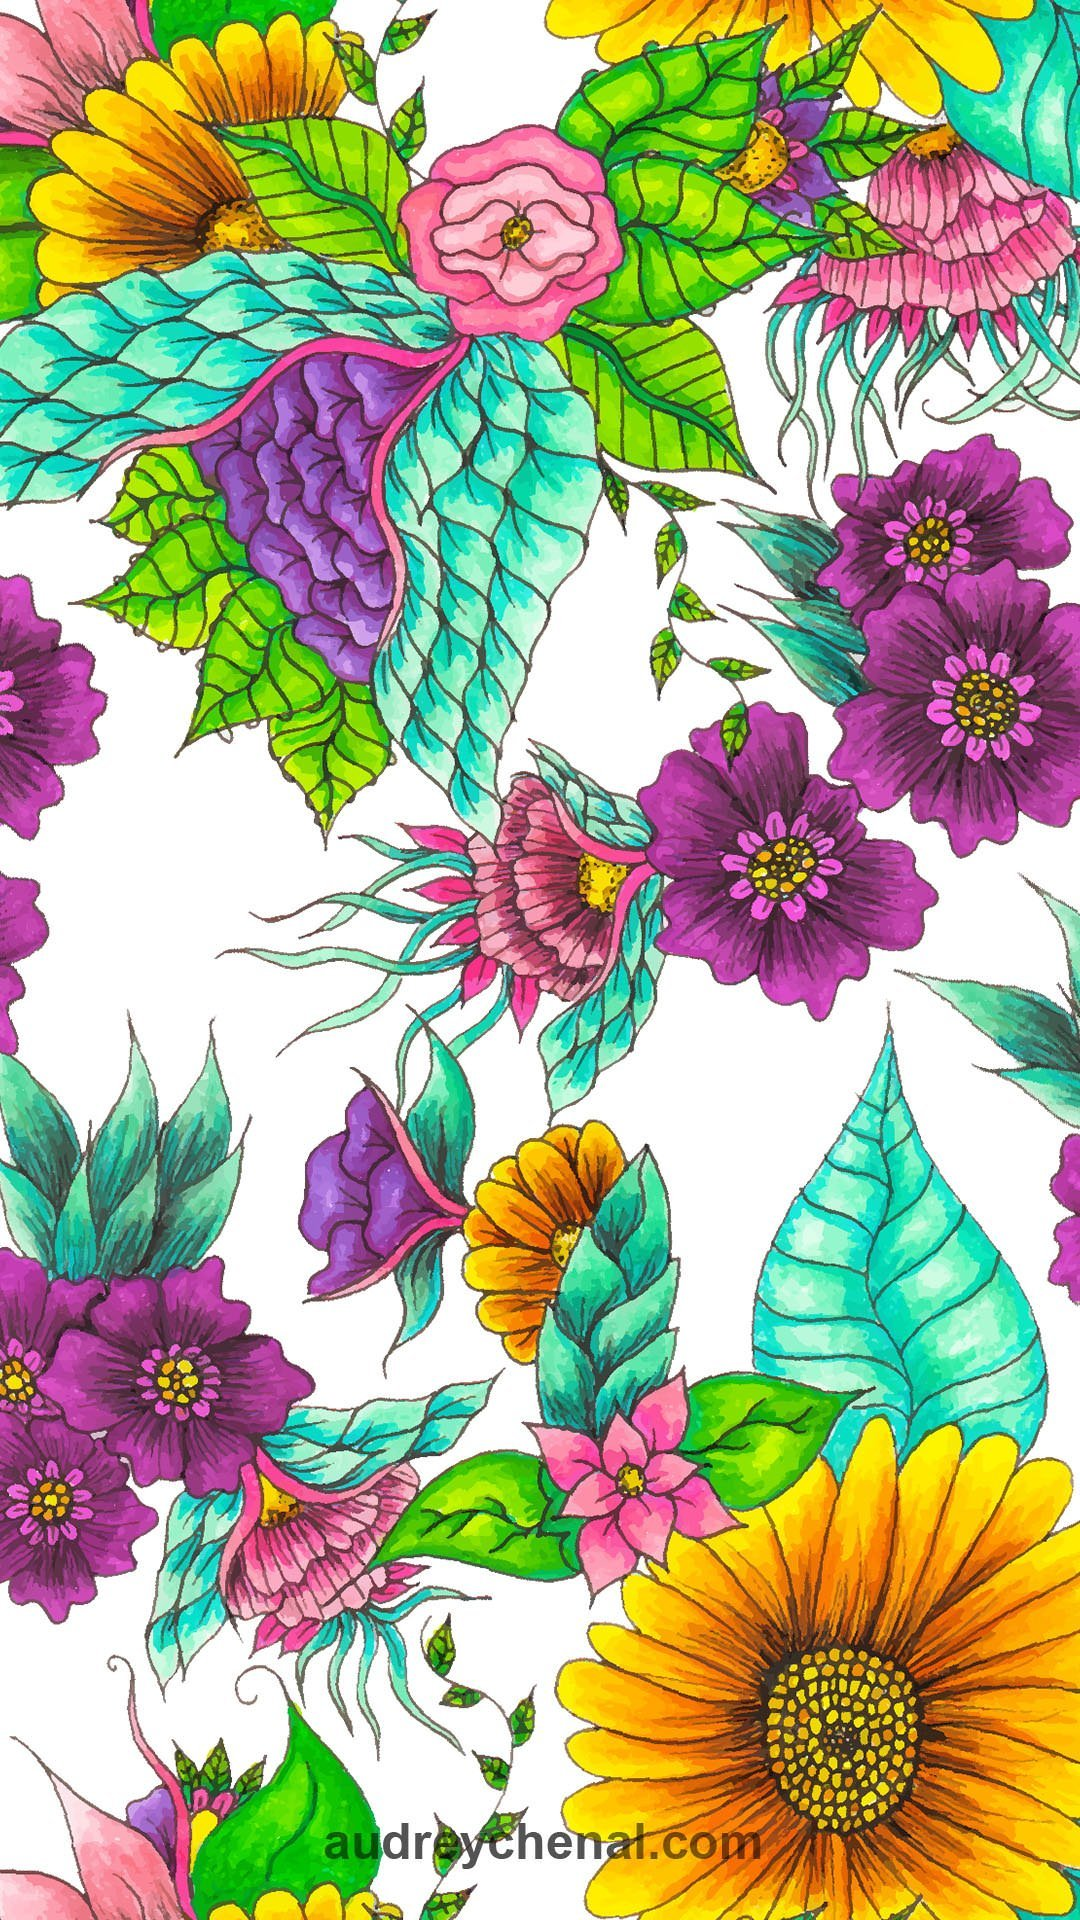 wallpaper colorful watercolor flowers floral hand drawn illustration by Audrey Chenal